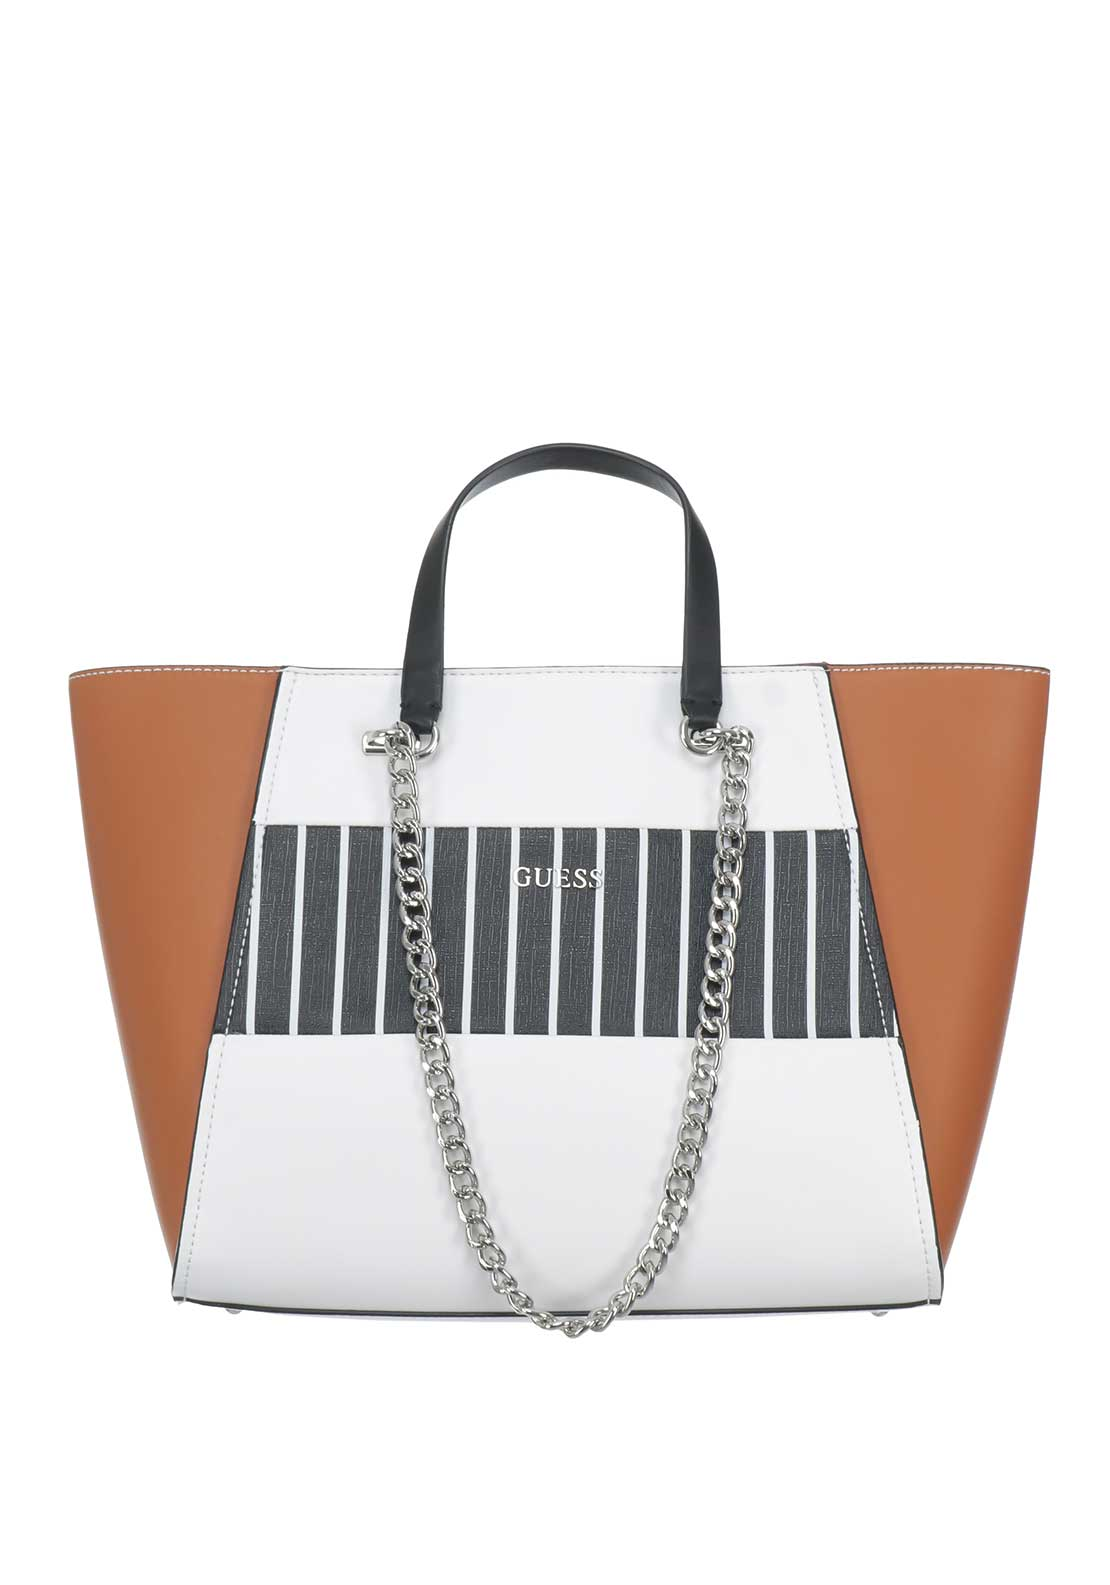 Guess NIkki Chain Tote Bag, Brown & White